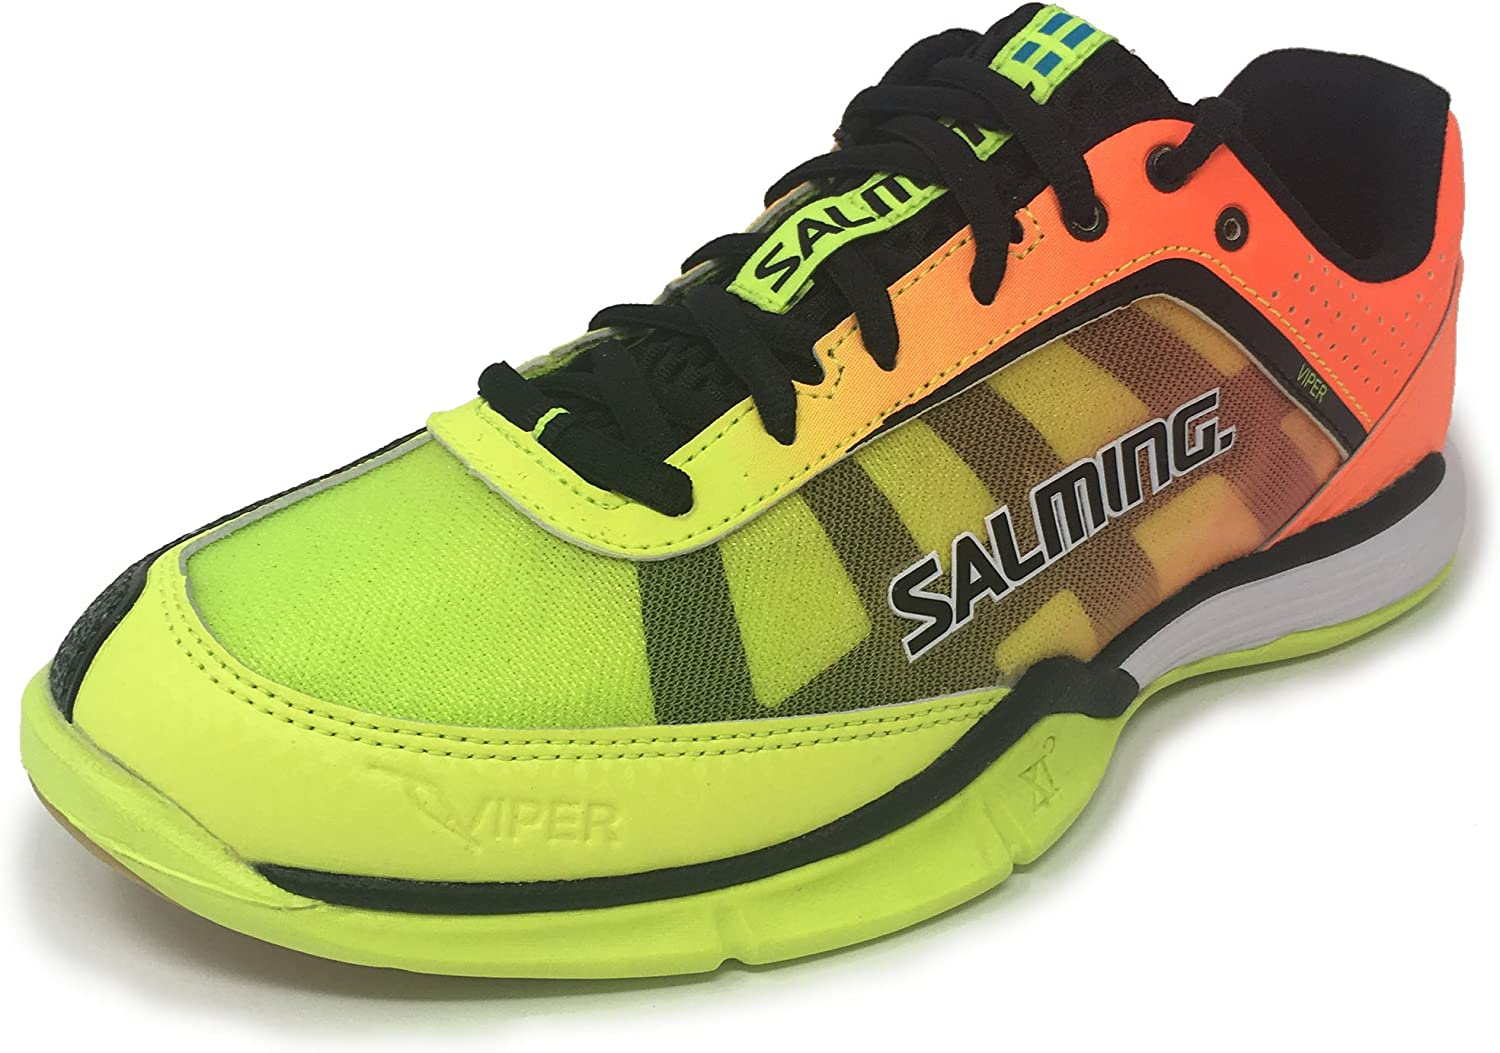 Salming Viper 4 Junior Yellow orange Indoor Court shoes